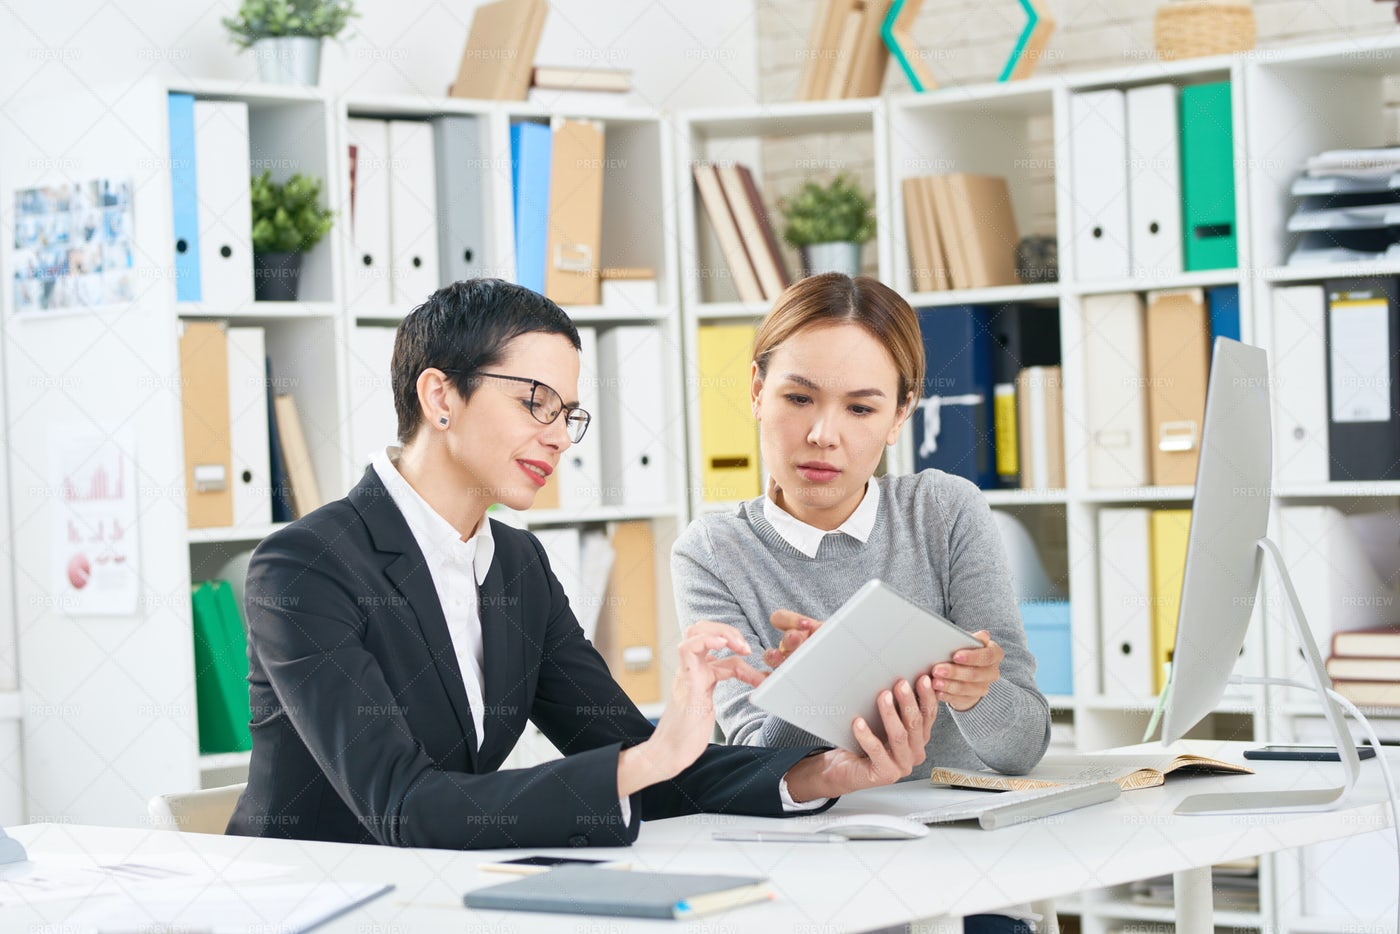 Analyzing Work Results: Stock Photos